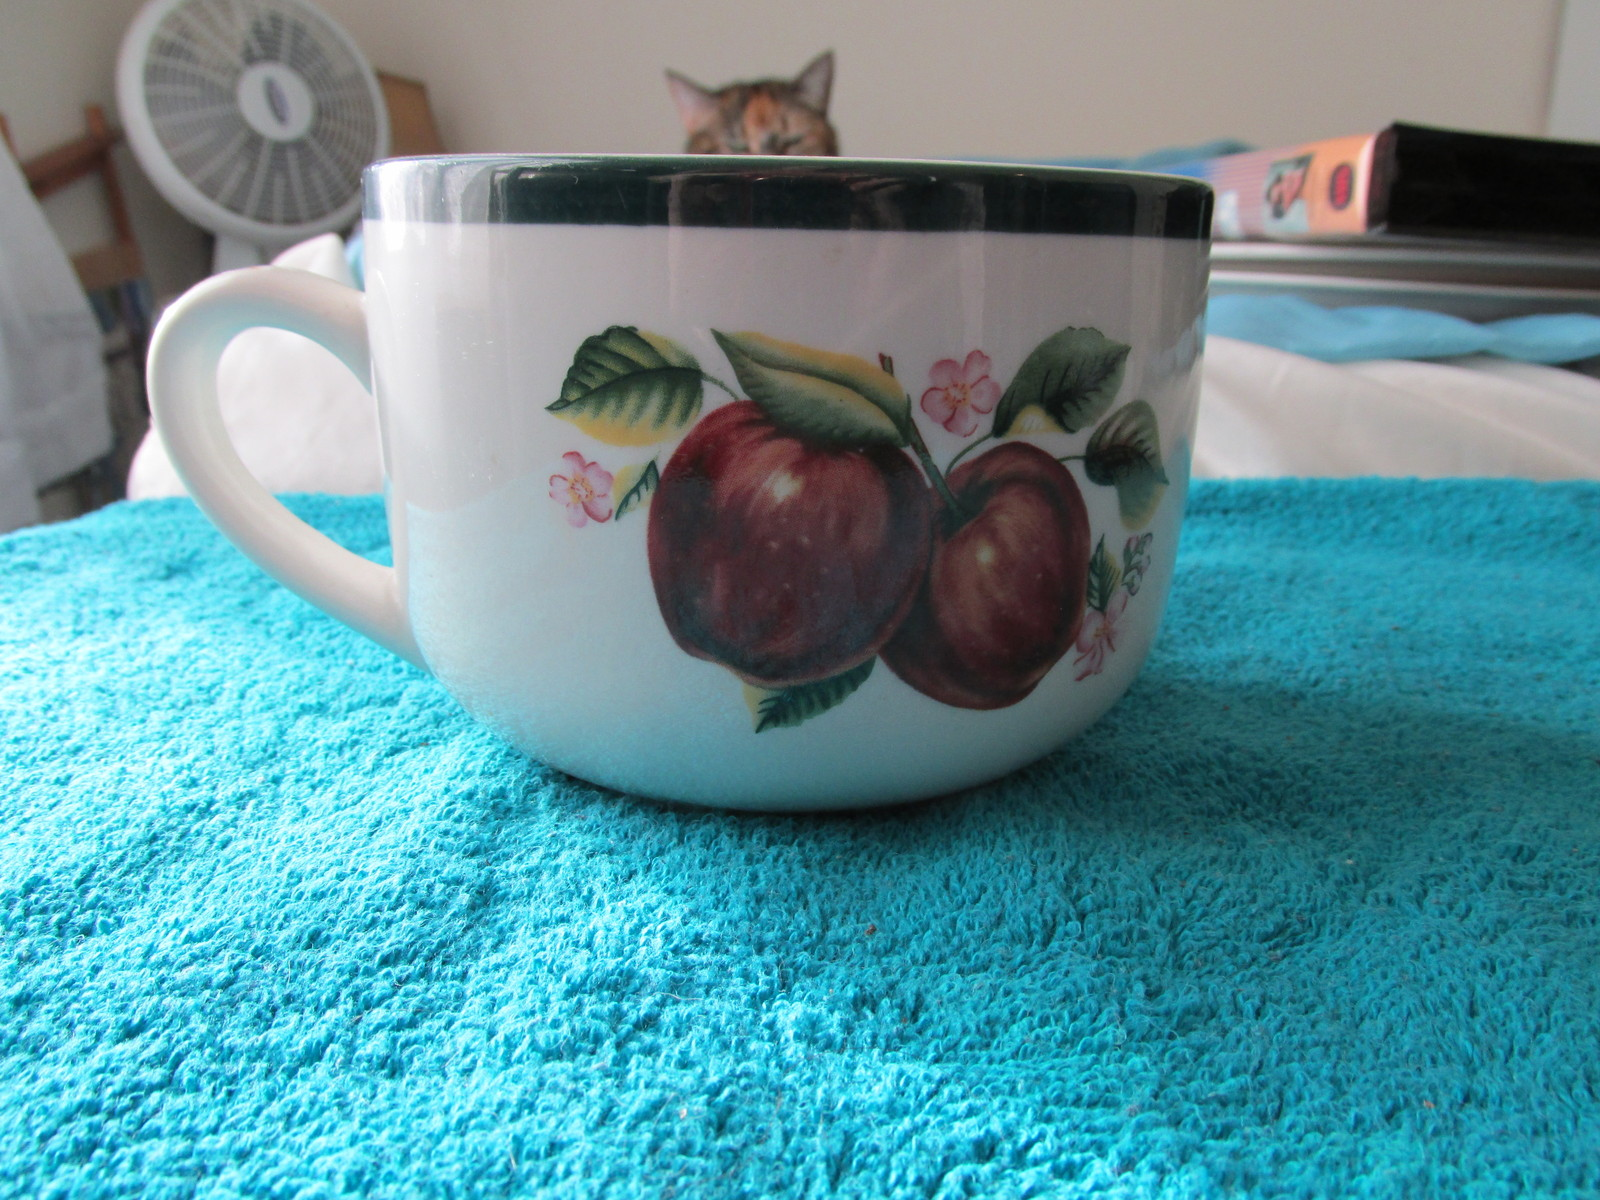 Casuals Made By China Pearl Soup Mug Bowl With Apples